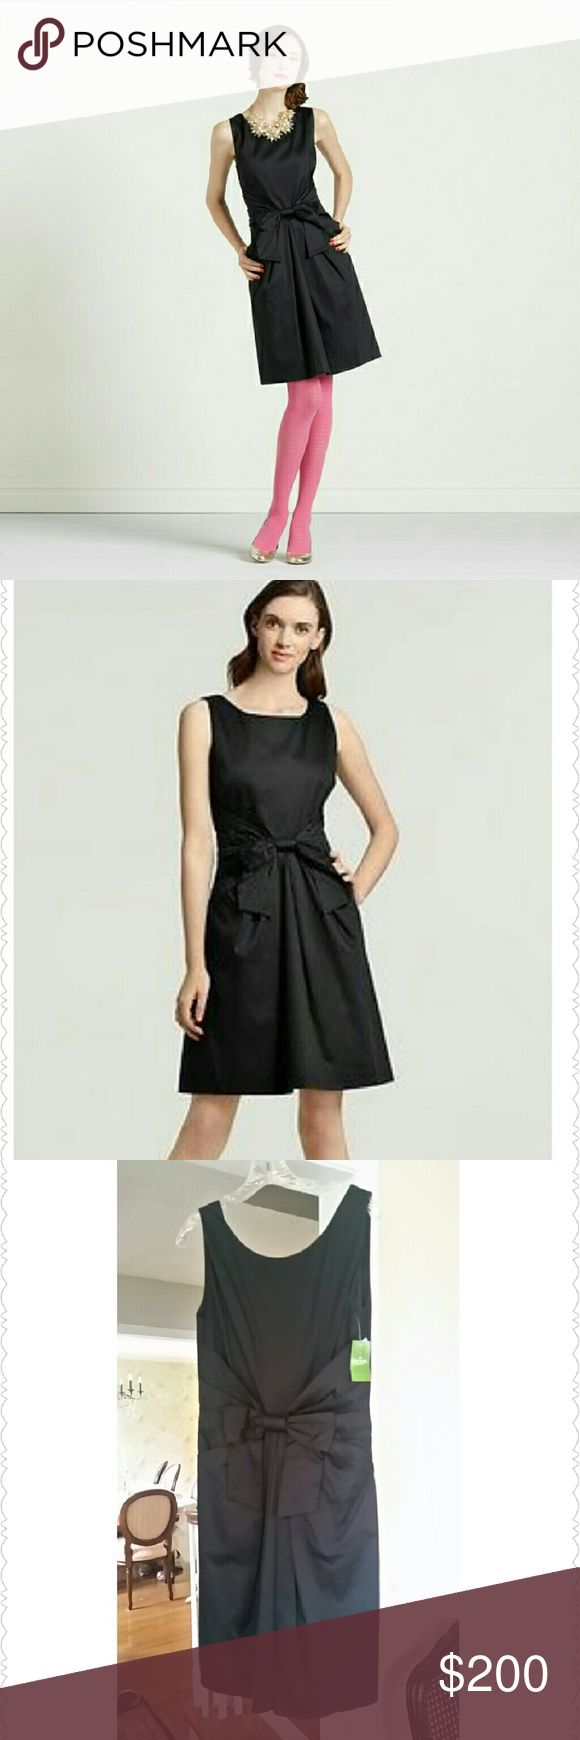 Kate Spade  Jillian Dress in Black Channel Audrey Hepburn and Jackie O in this timeless LBD!  This sweet, feminine frock is fashioned of cotton with a boatneck front and a low scooped back. Pleating at the waist is topped with a dramatic bow, lending waist-whittling definition before descending into a full skirt with kangaroo pockets-perfect for easy access to lipstick or a little cash to fix your lips or buy a  cocktail. 98% Cotton 2% lycra.  Fitted waist defined by pleats; full skirt and…